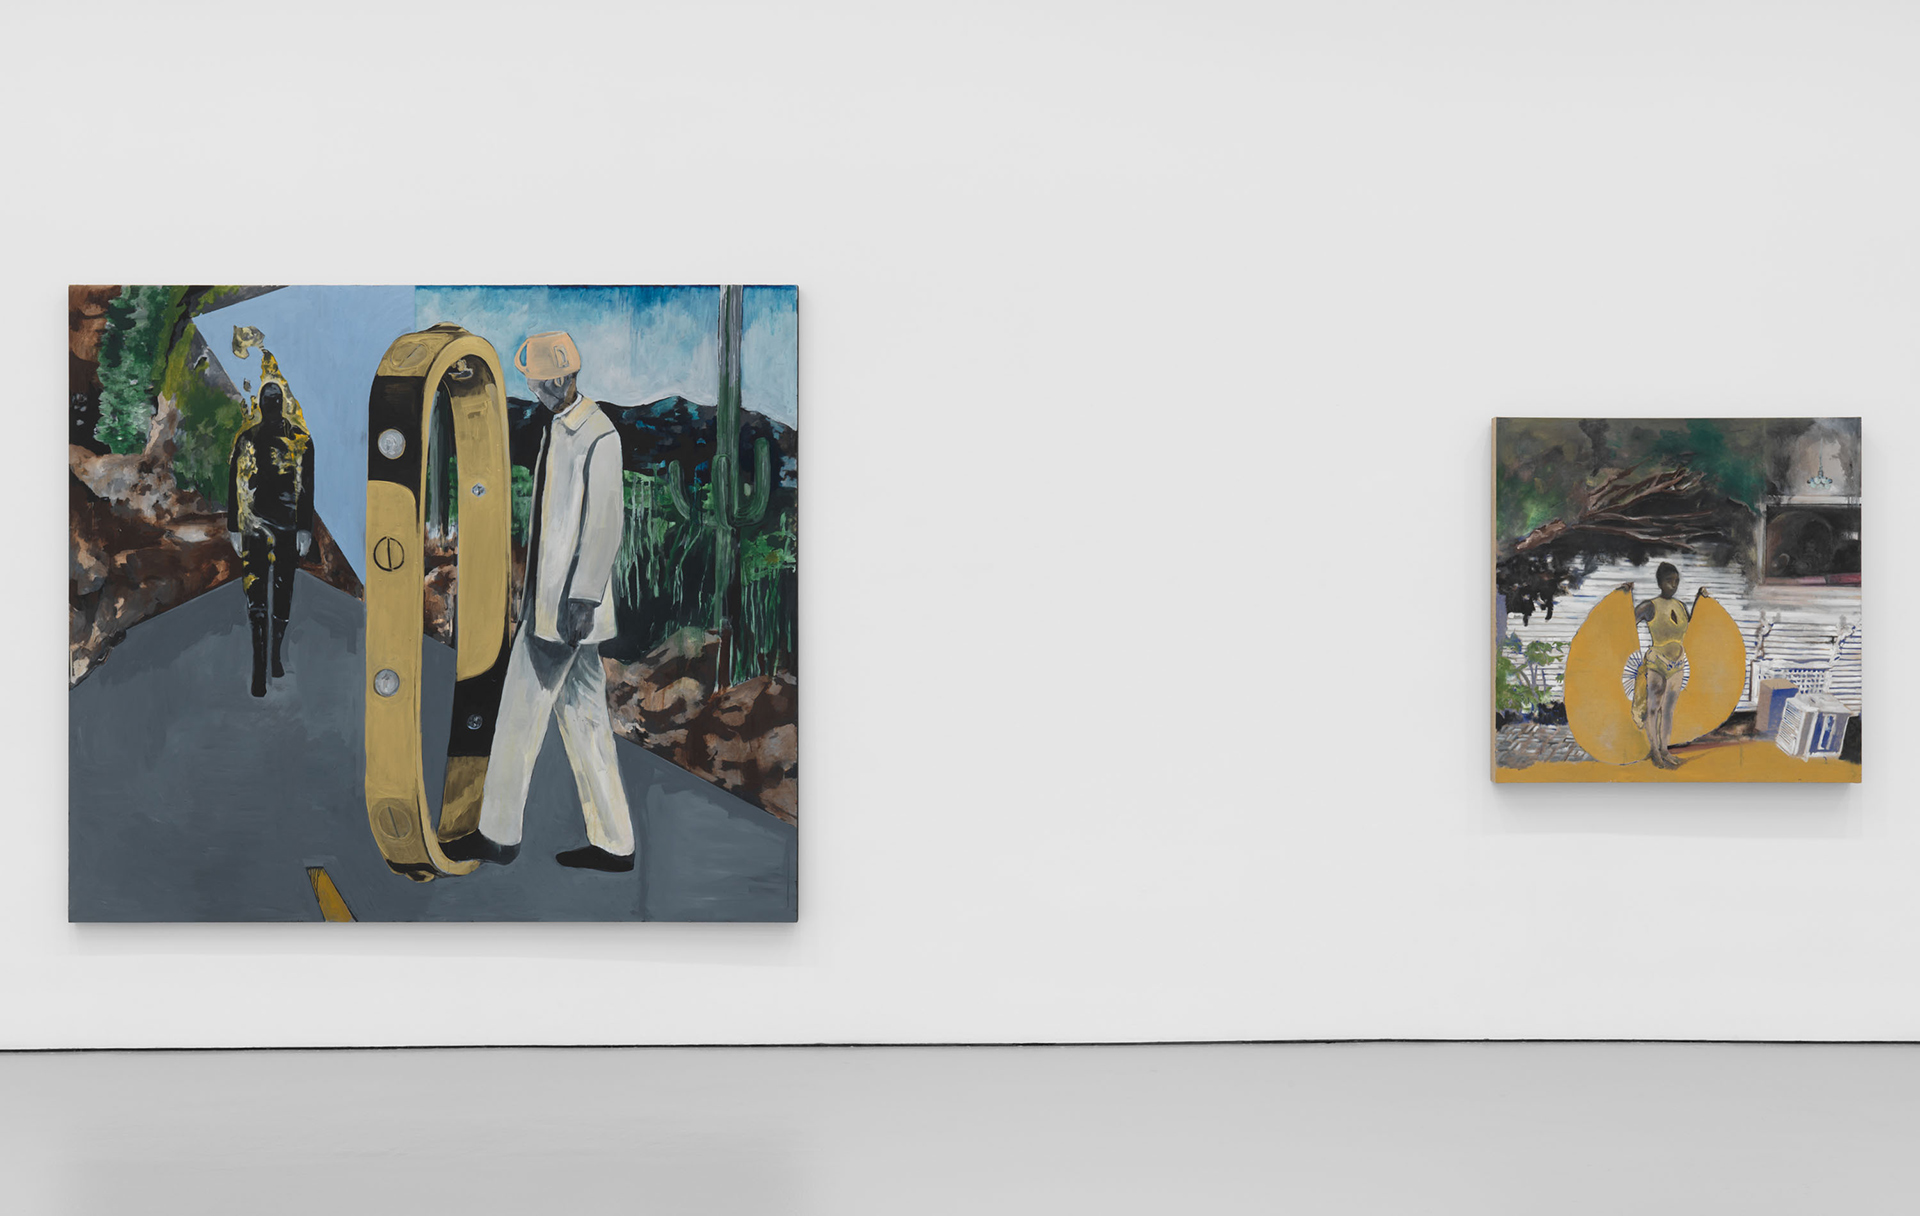 Installation view of the exhibition Noah Davis at David Zwirner in New York, dated 2020.